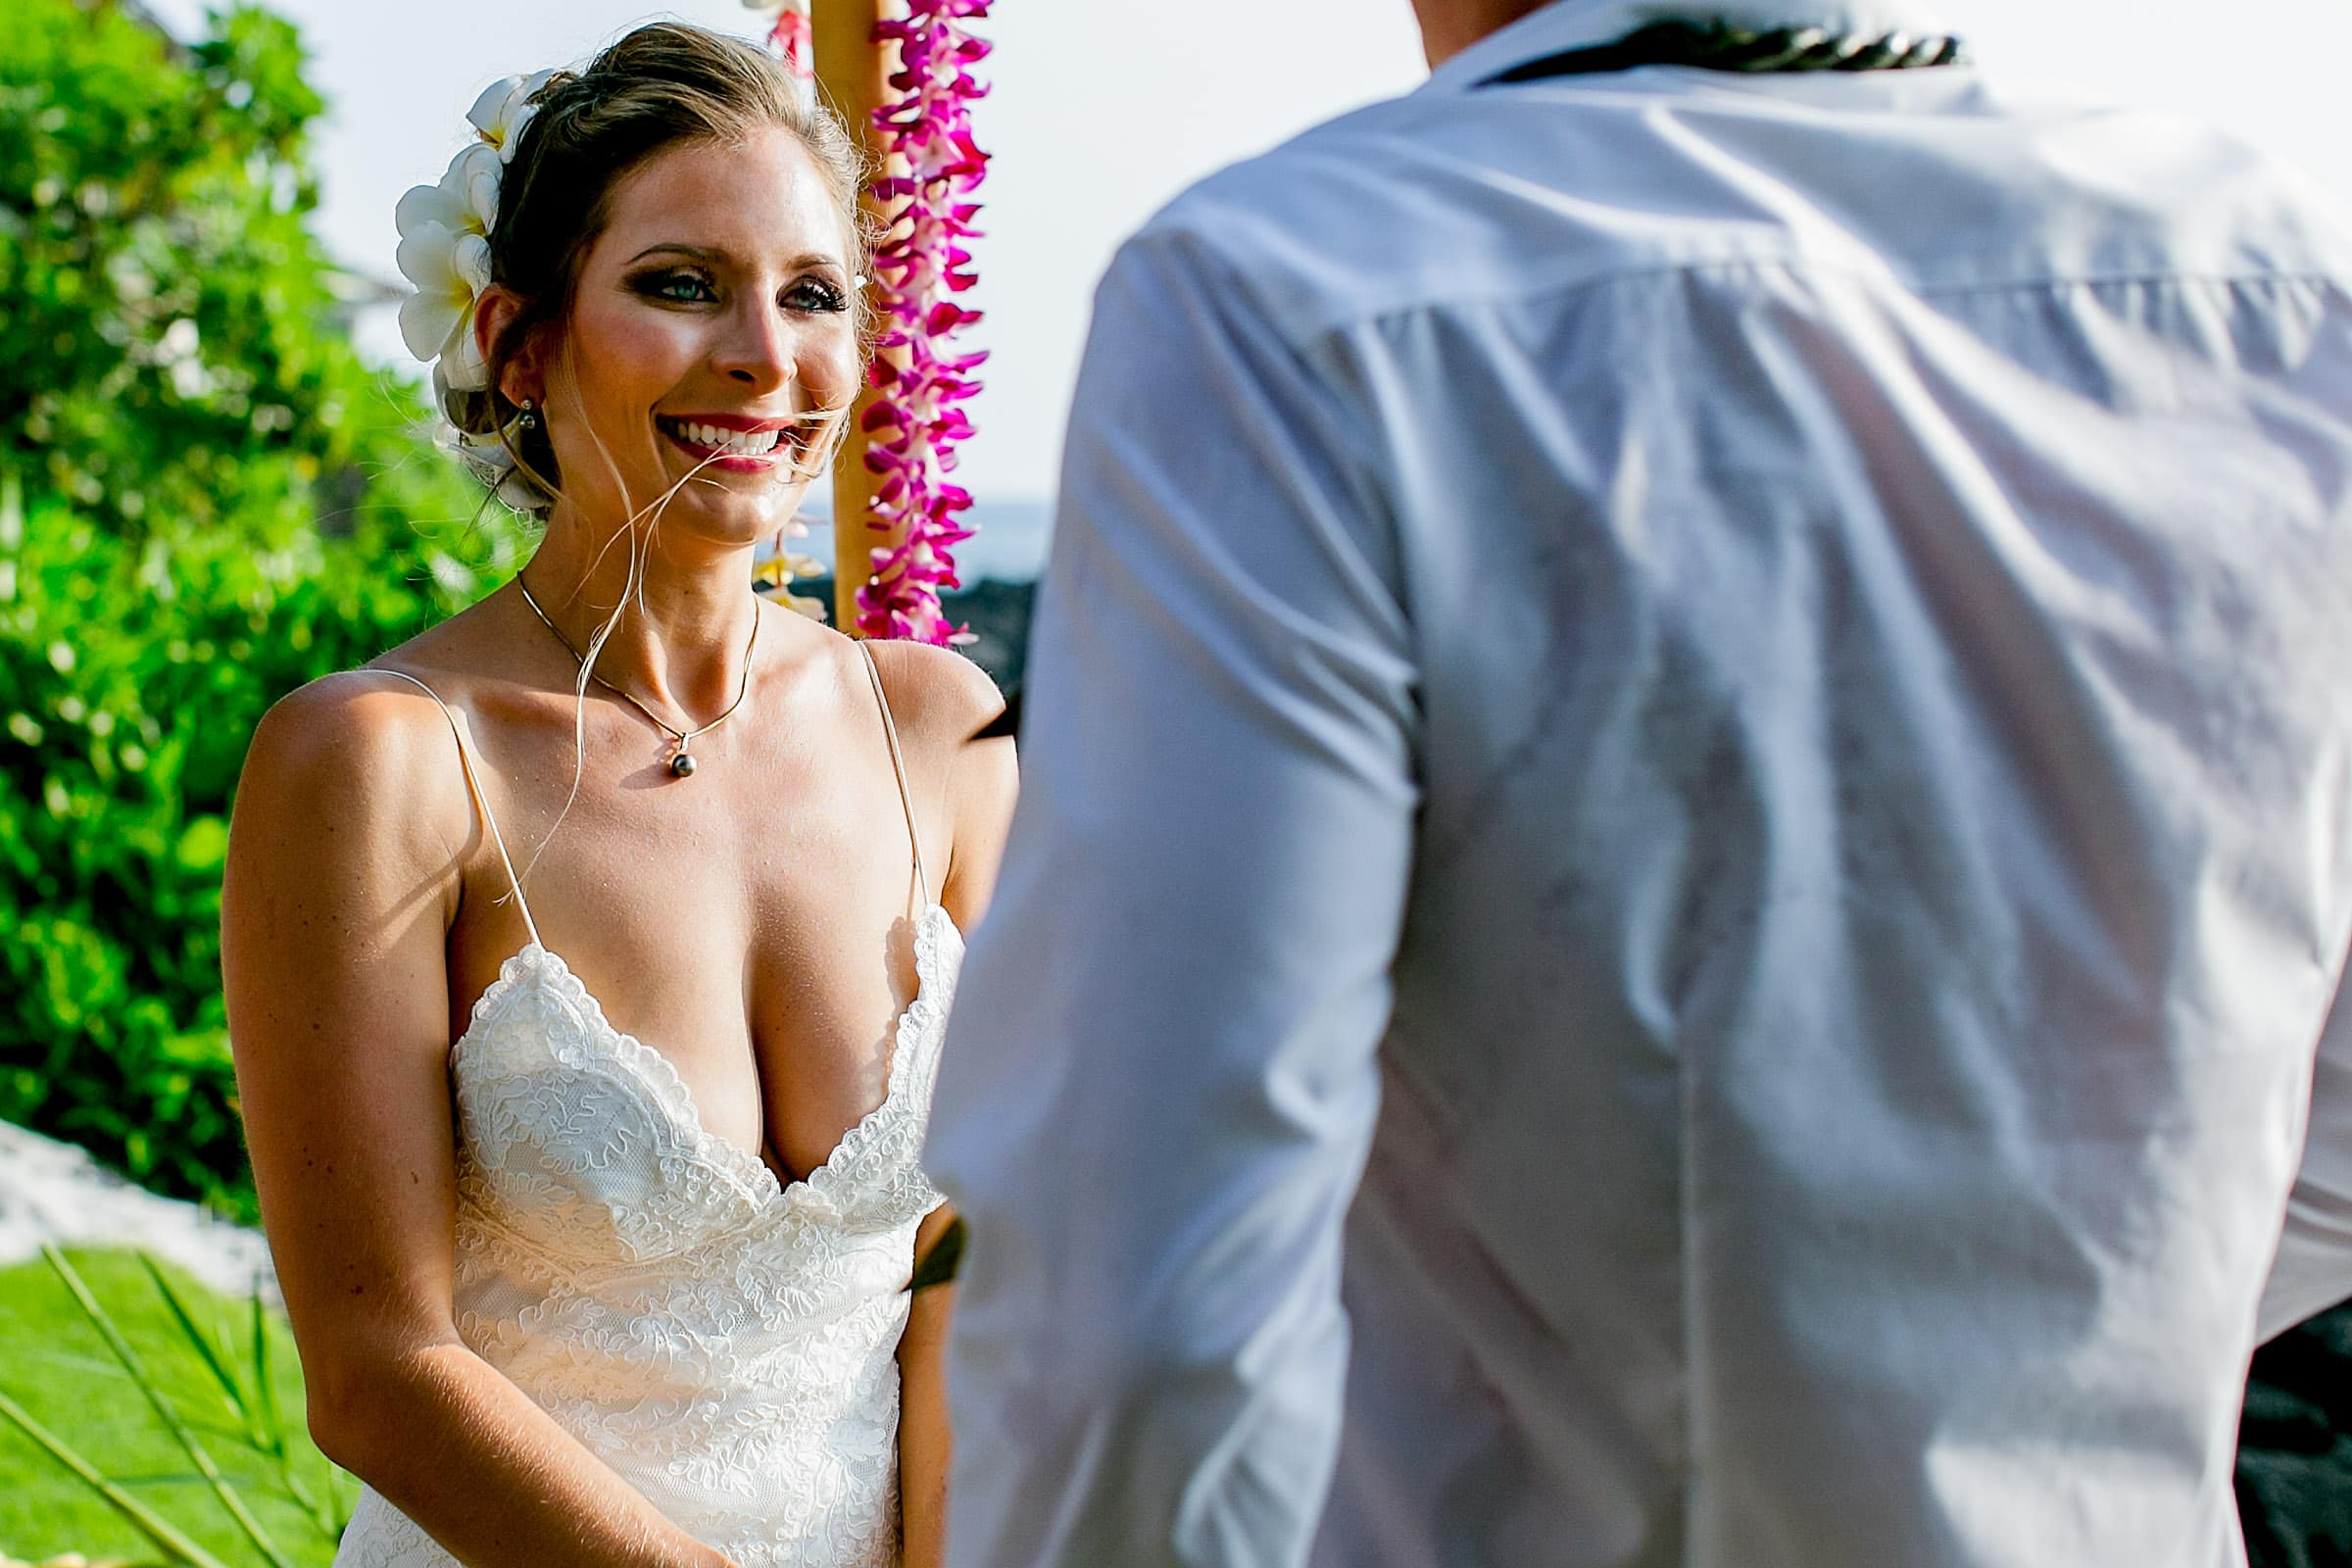 Bride smile toward her groom during a Kailua Kona Wedding ceremony at the Kona Beach Bungalows on the Big Island of Hawaii